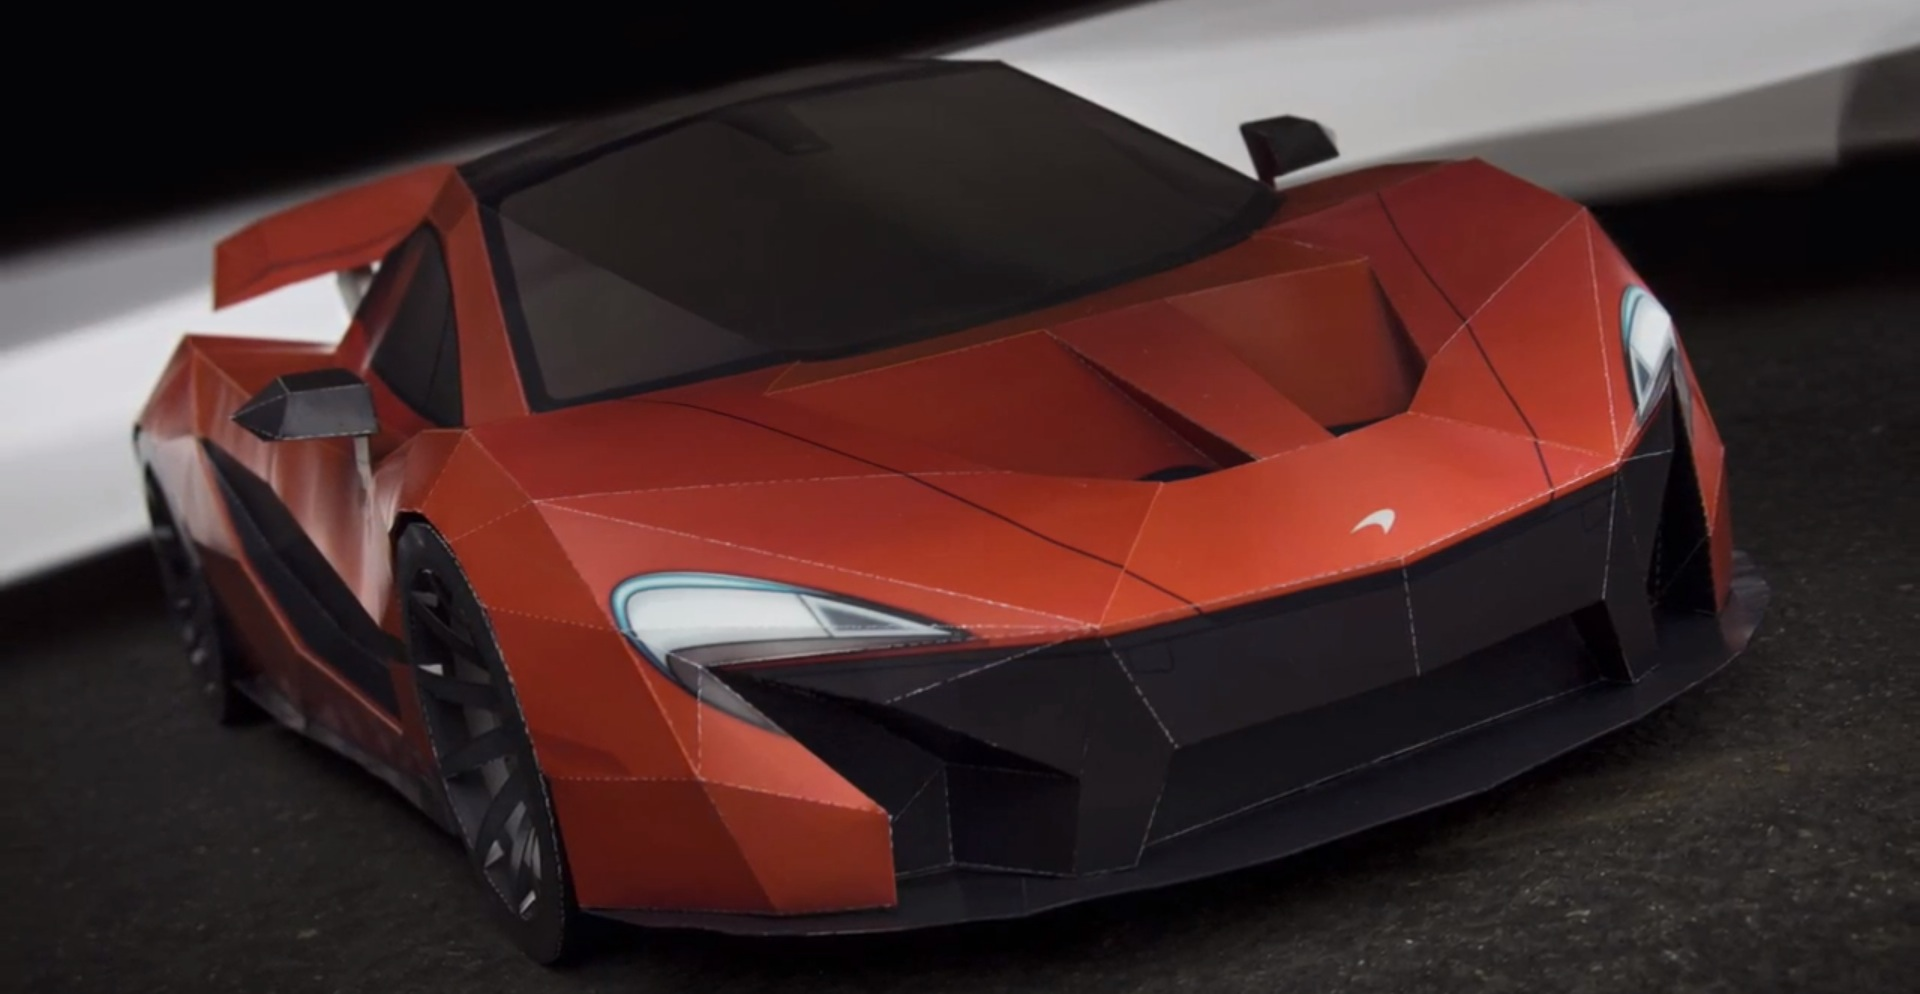 McLaren P1 Made from Paper Is an Amazing Build - autoevolution